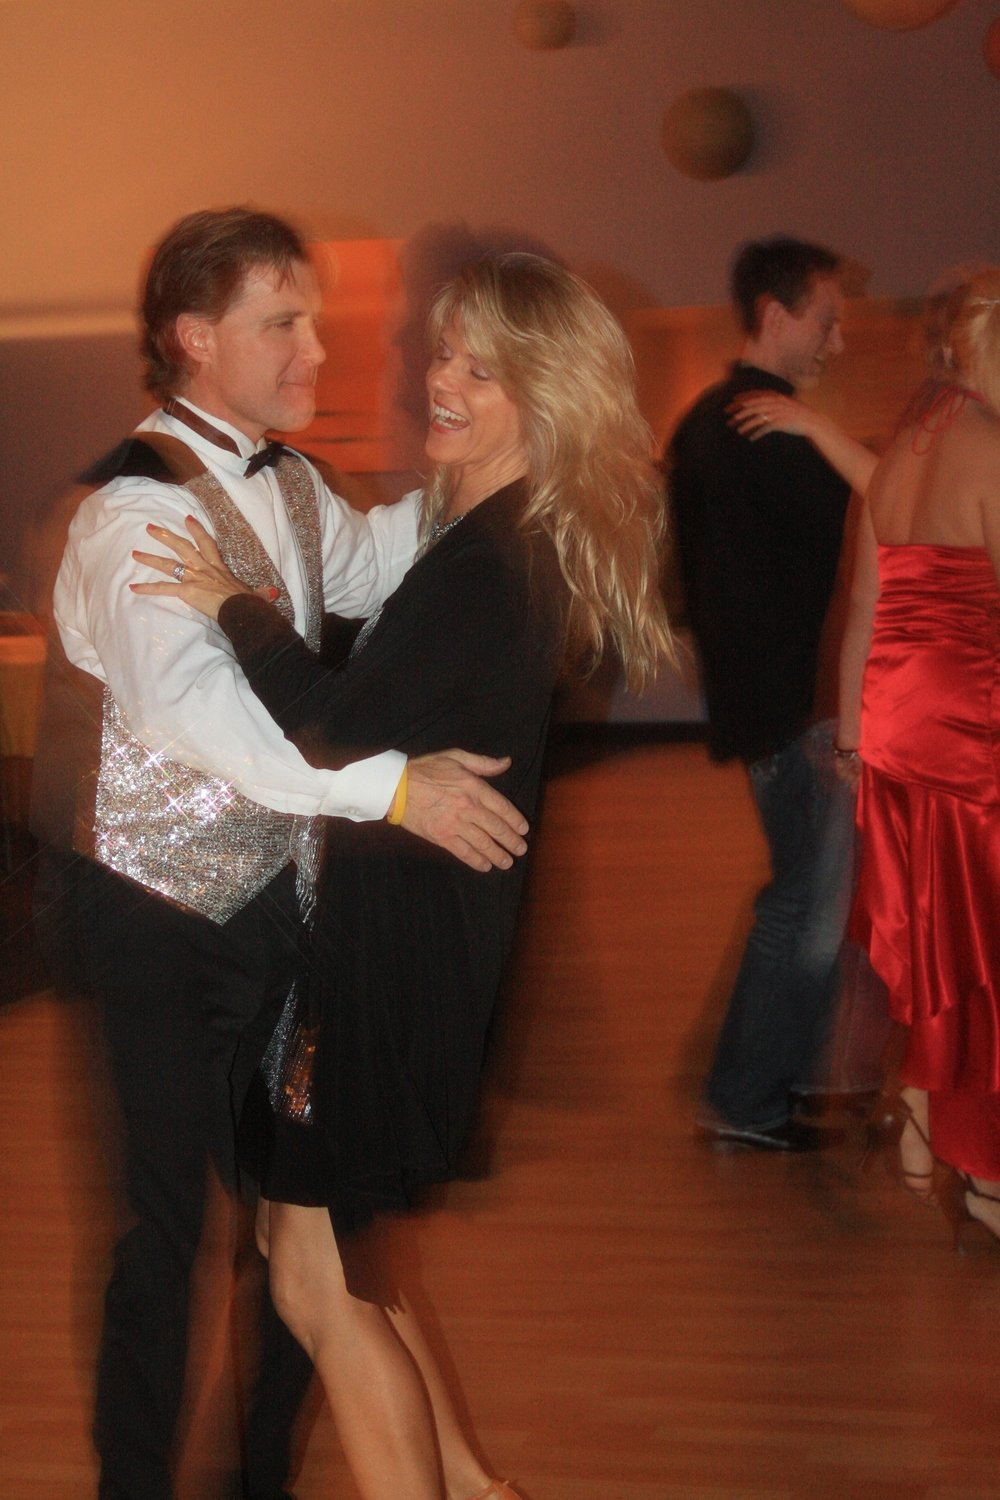 5 private ballroom or wedding dance lessons